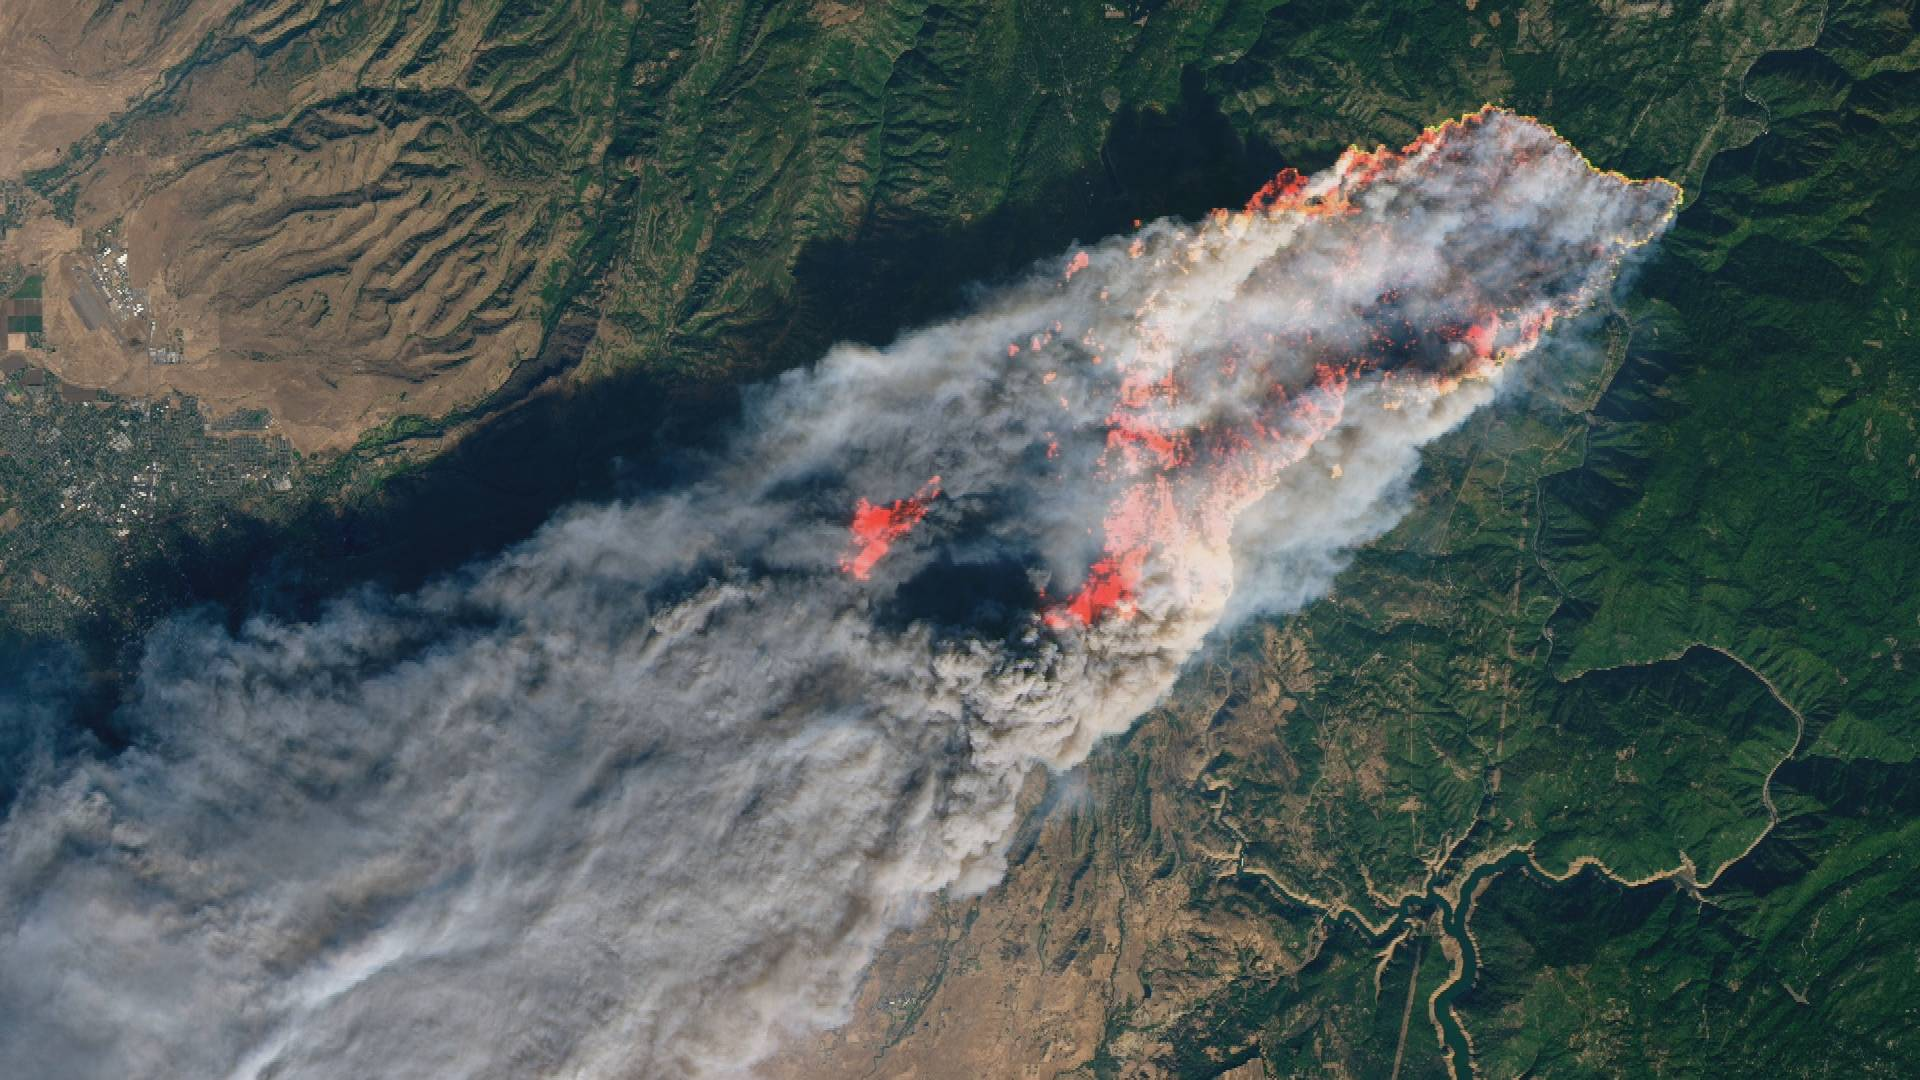 A satellite image shows the Camp Fire - driven by high winds after it was sparked by PG&E equipment - as it consumes the town of Paradise in Nov., 2018. The blaze remains the deadliest and most destructive in California history.